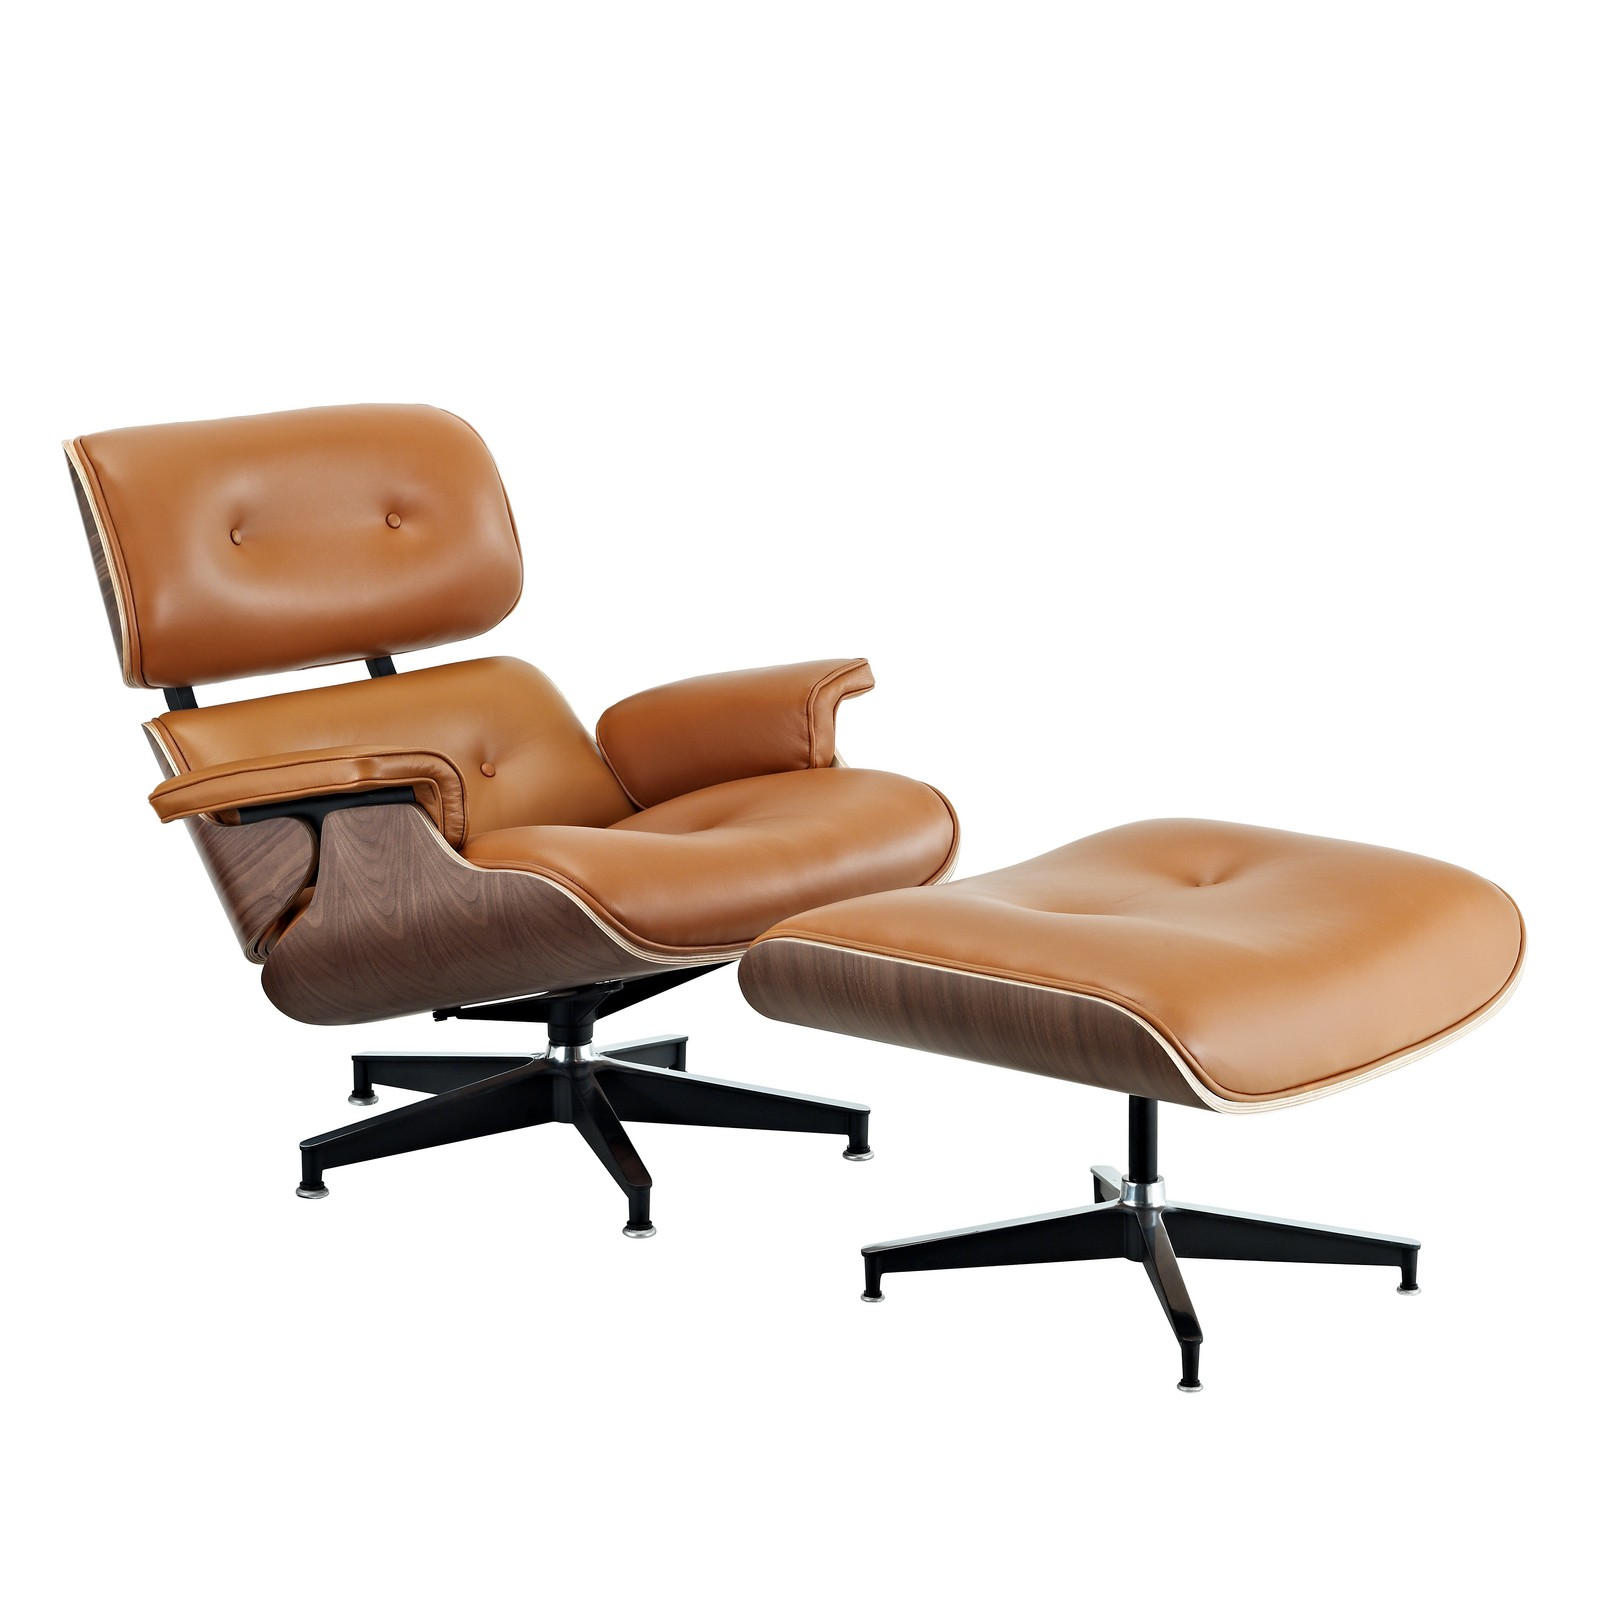 Bonded Leather Chair and Ottoman | Reclining Chair with Ottoman | Leather Chair and Ottoman